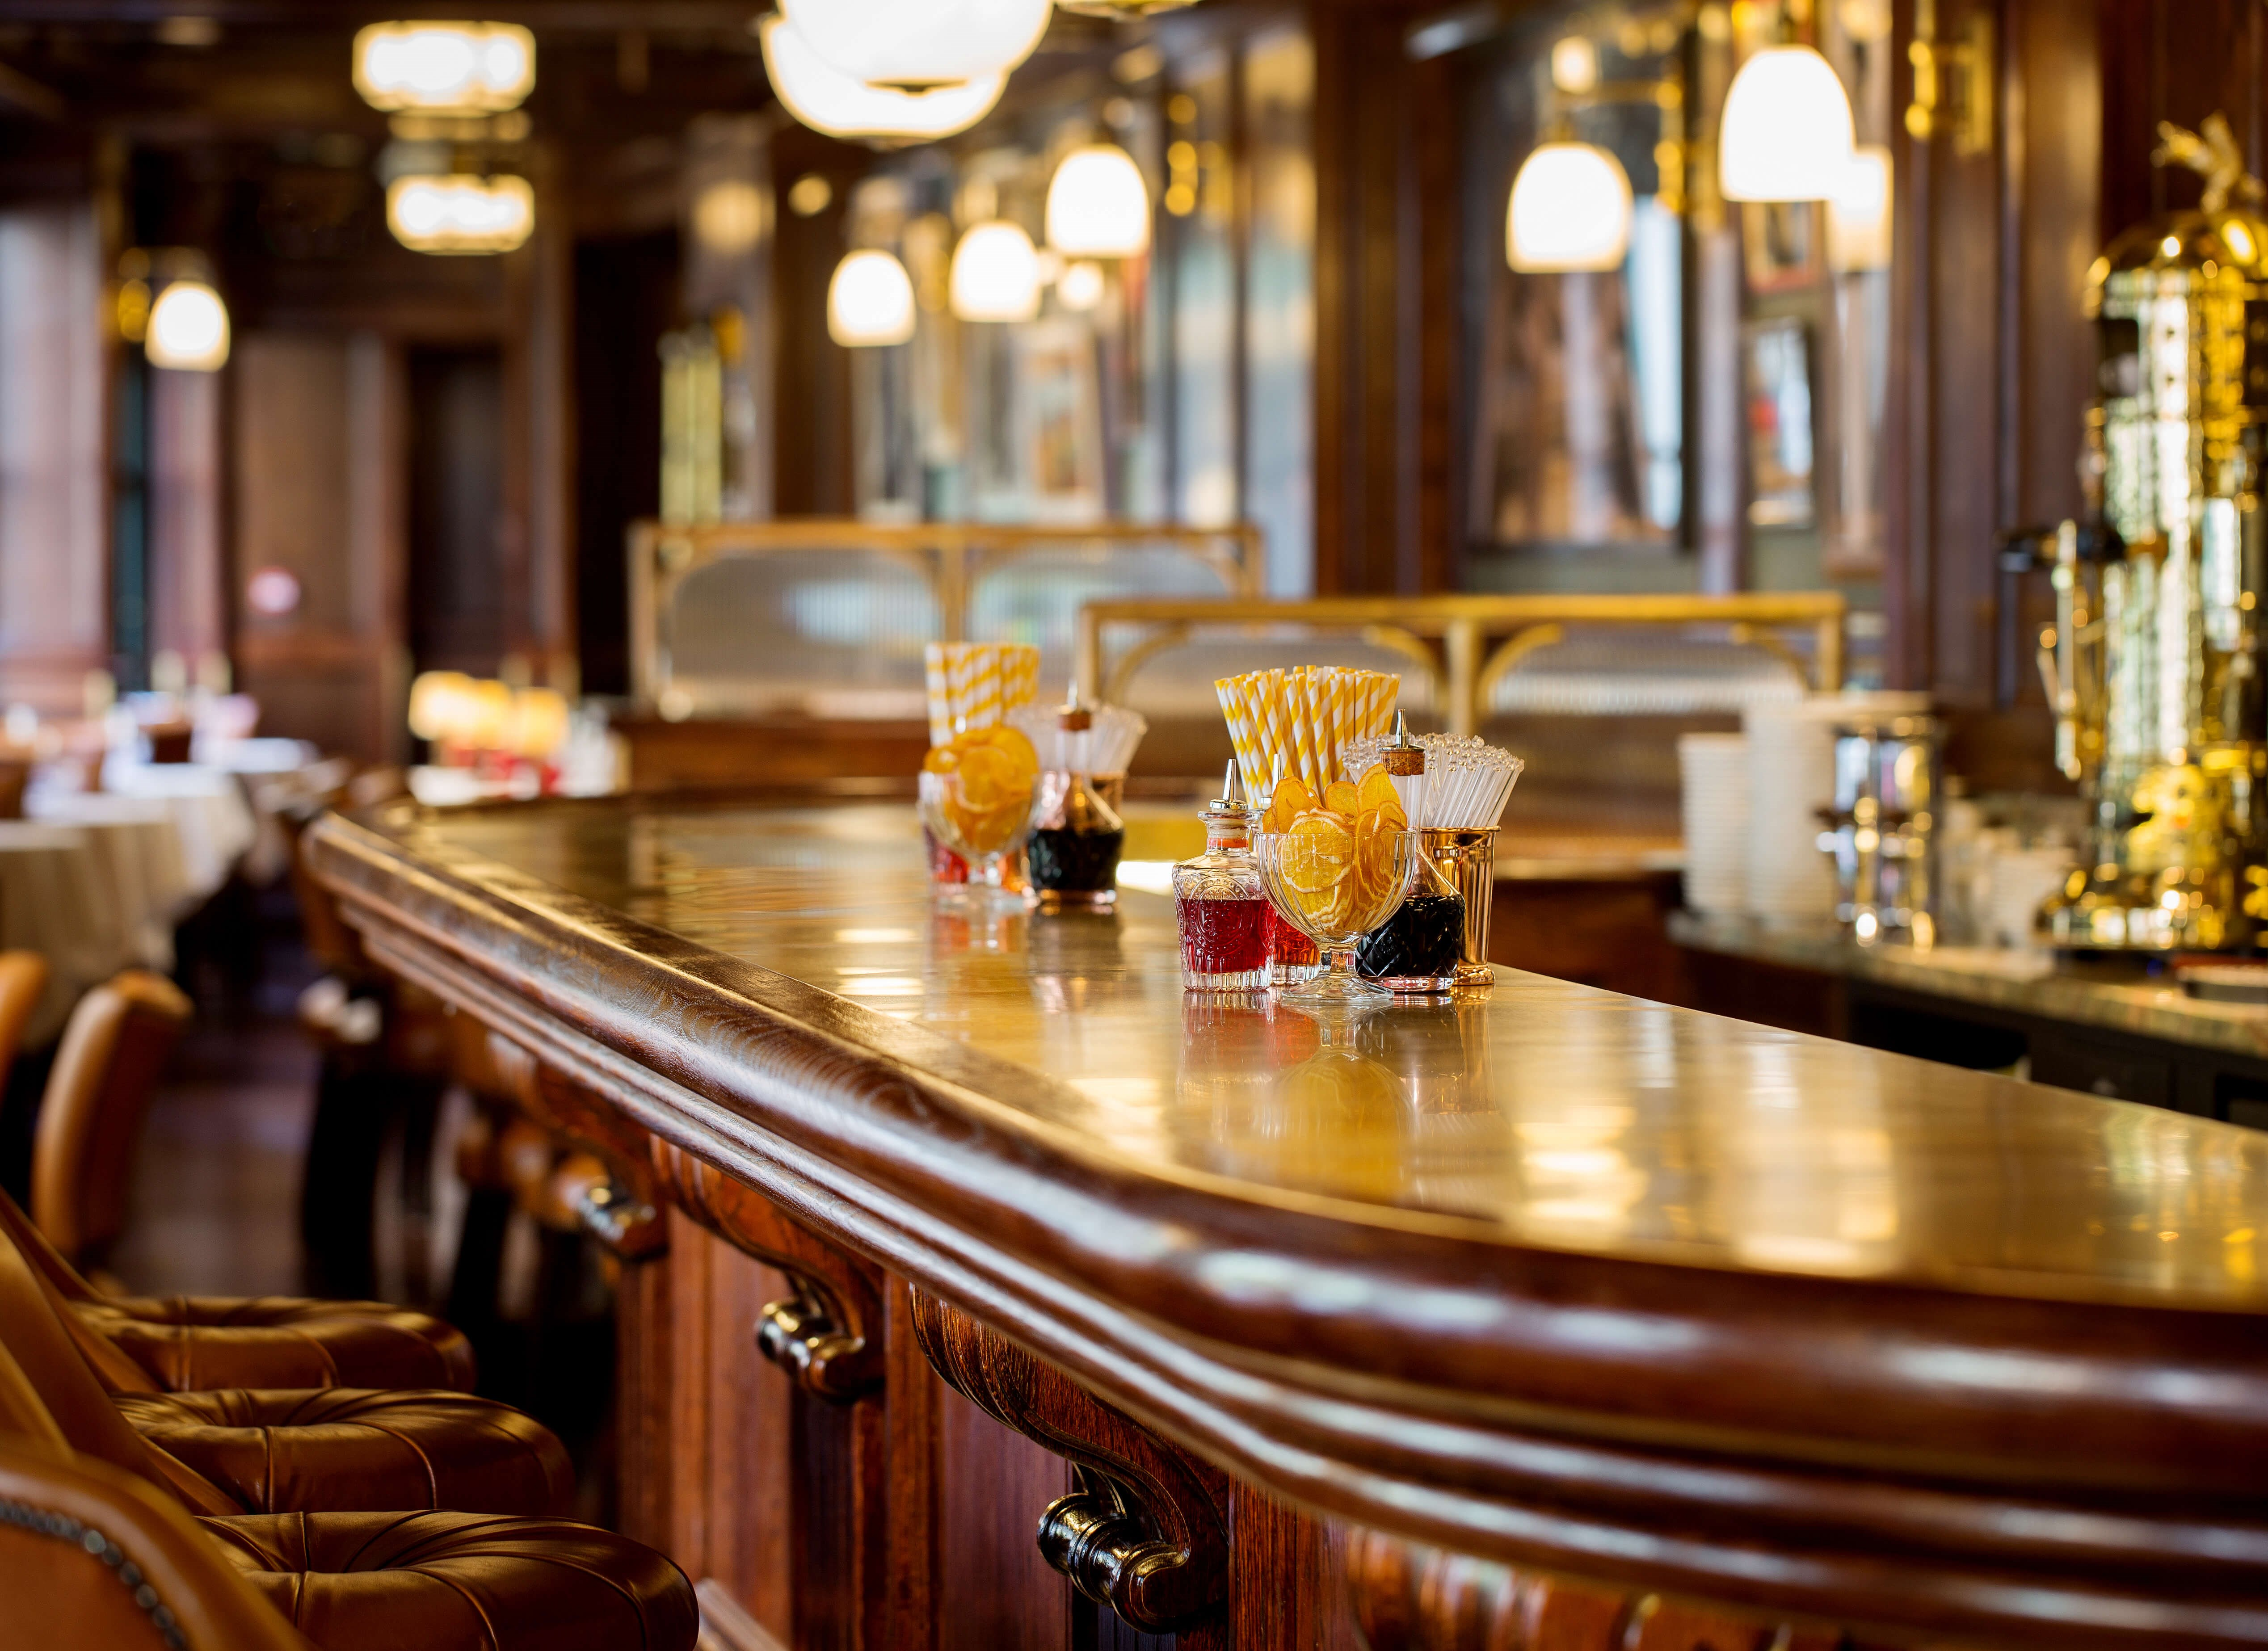 The Bar Counter - Harry's Dolce Vita